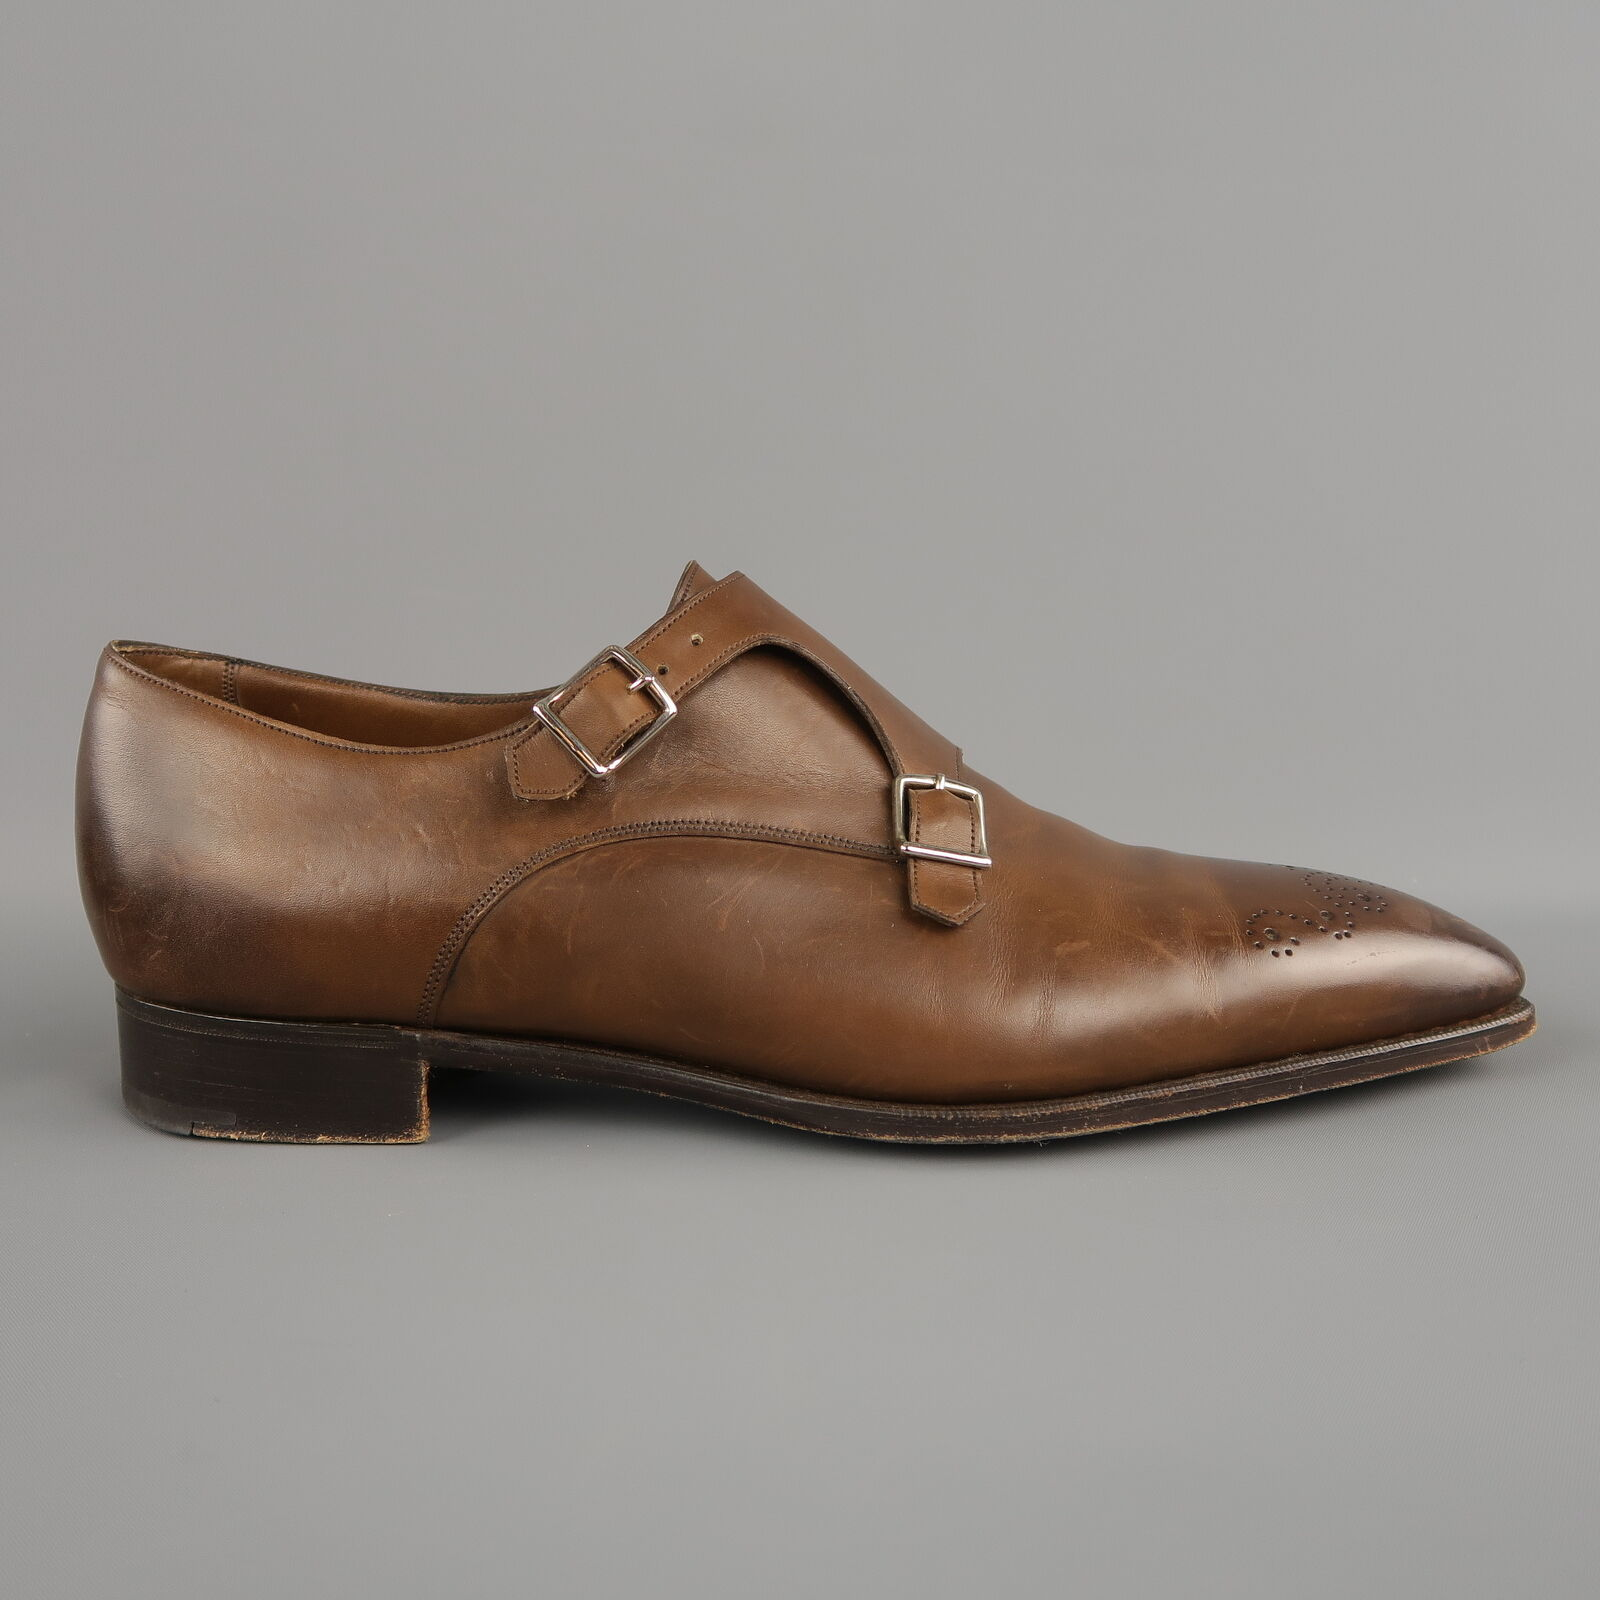 GAZIANO & GIRLING Grosvernor Dimensione 13.5 Marroneee Perforated Leather Loafers